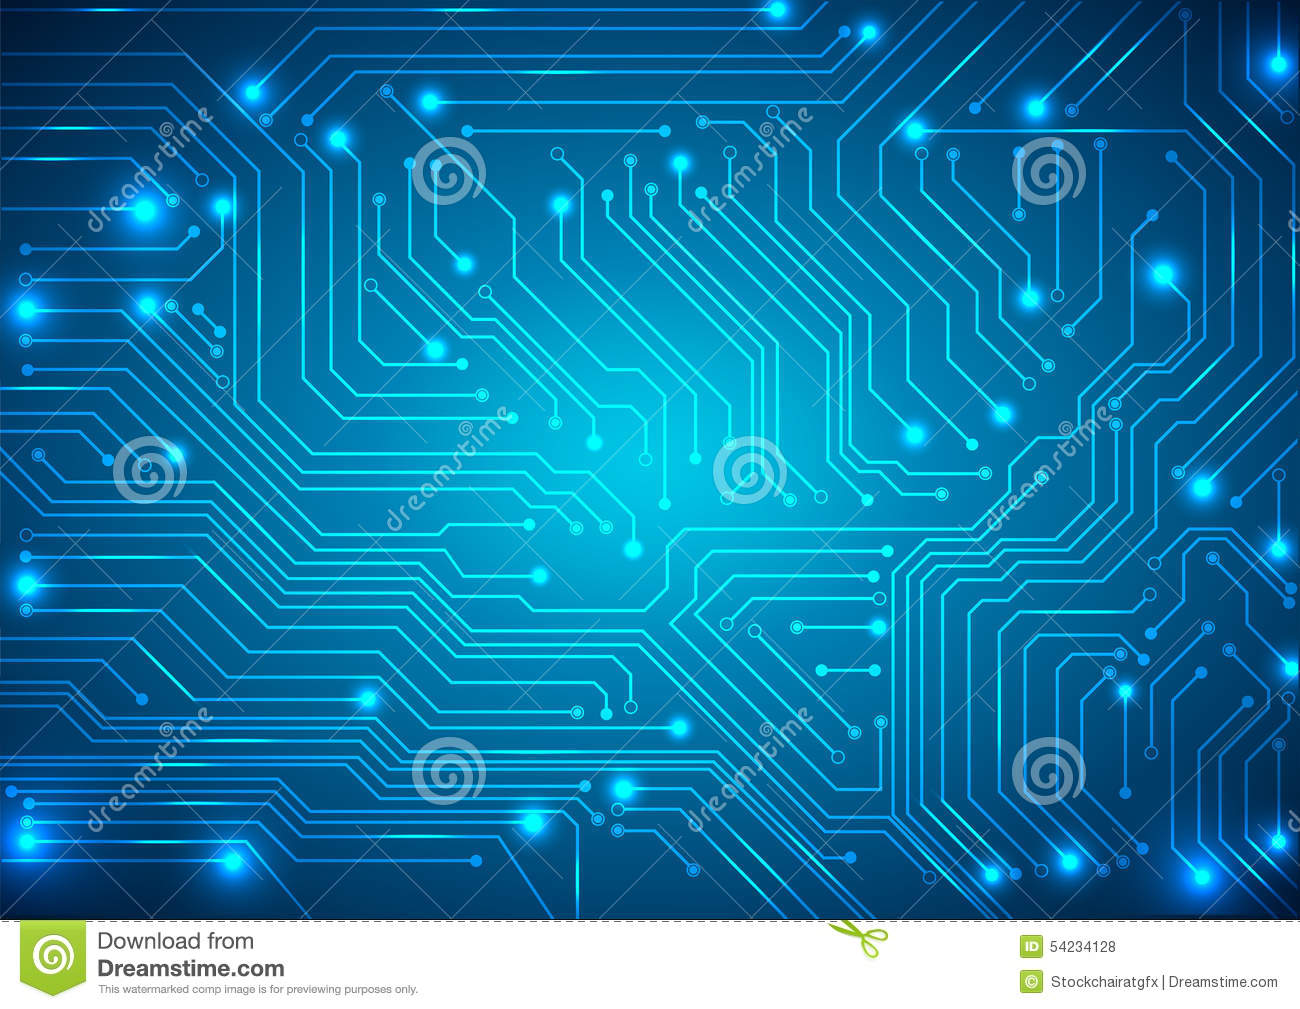 Motherboard Wallpaper 3d Abstract Vector Background With High Tech Circuit Board